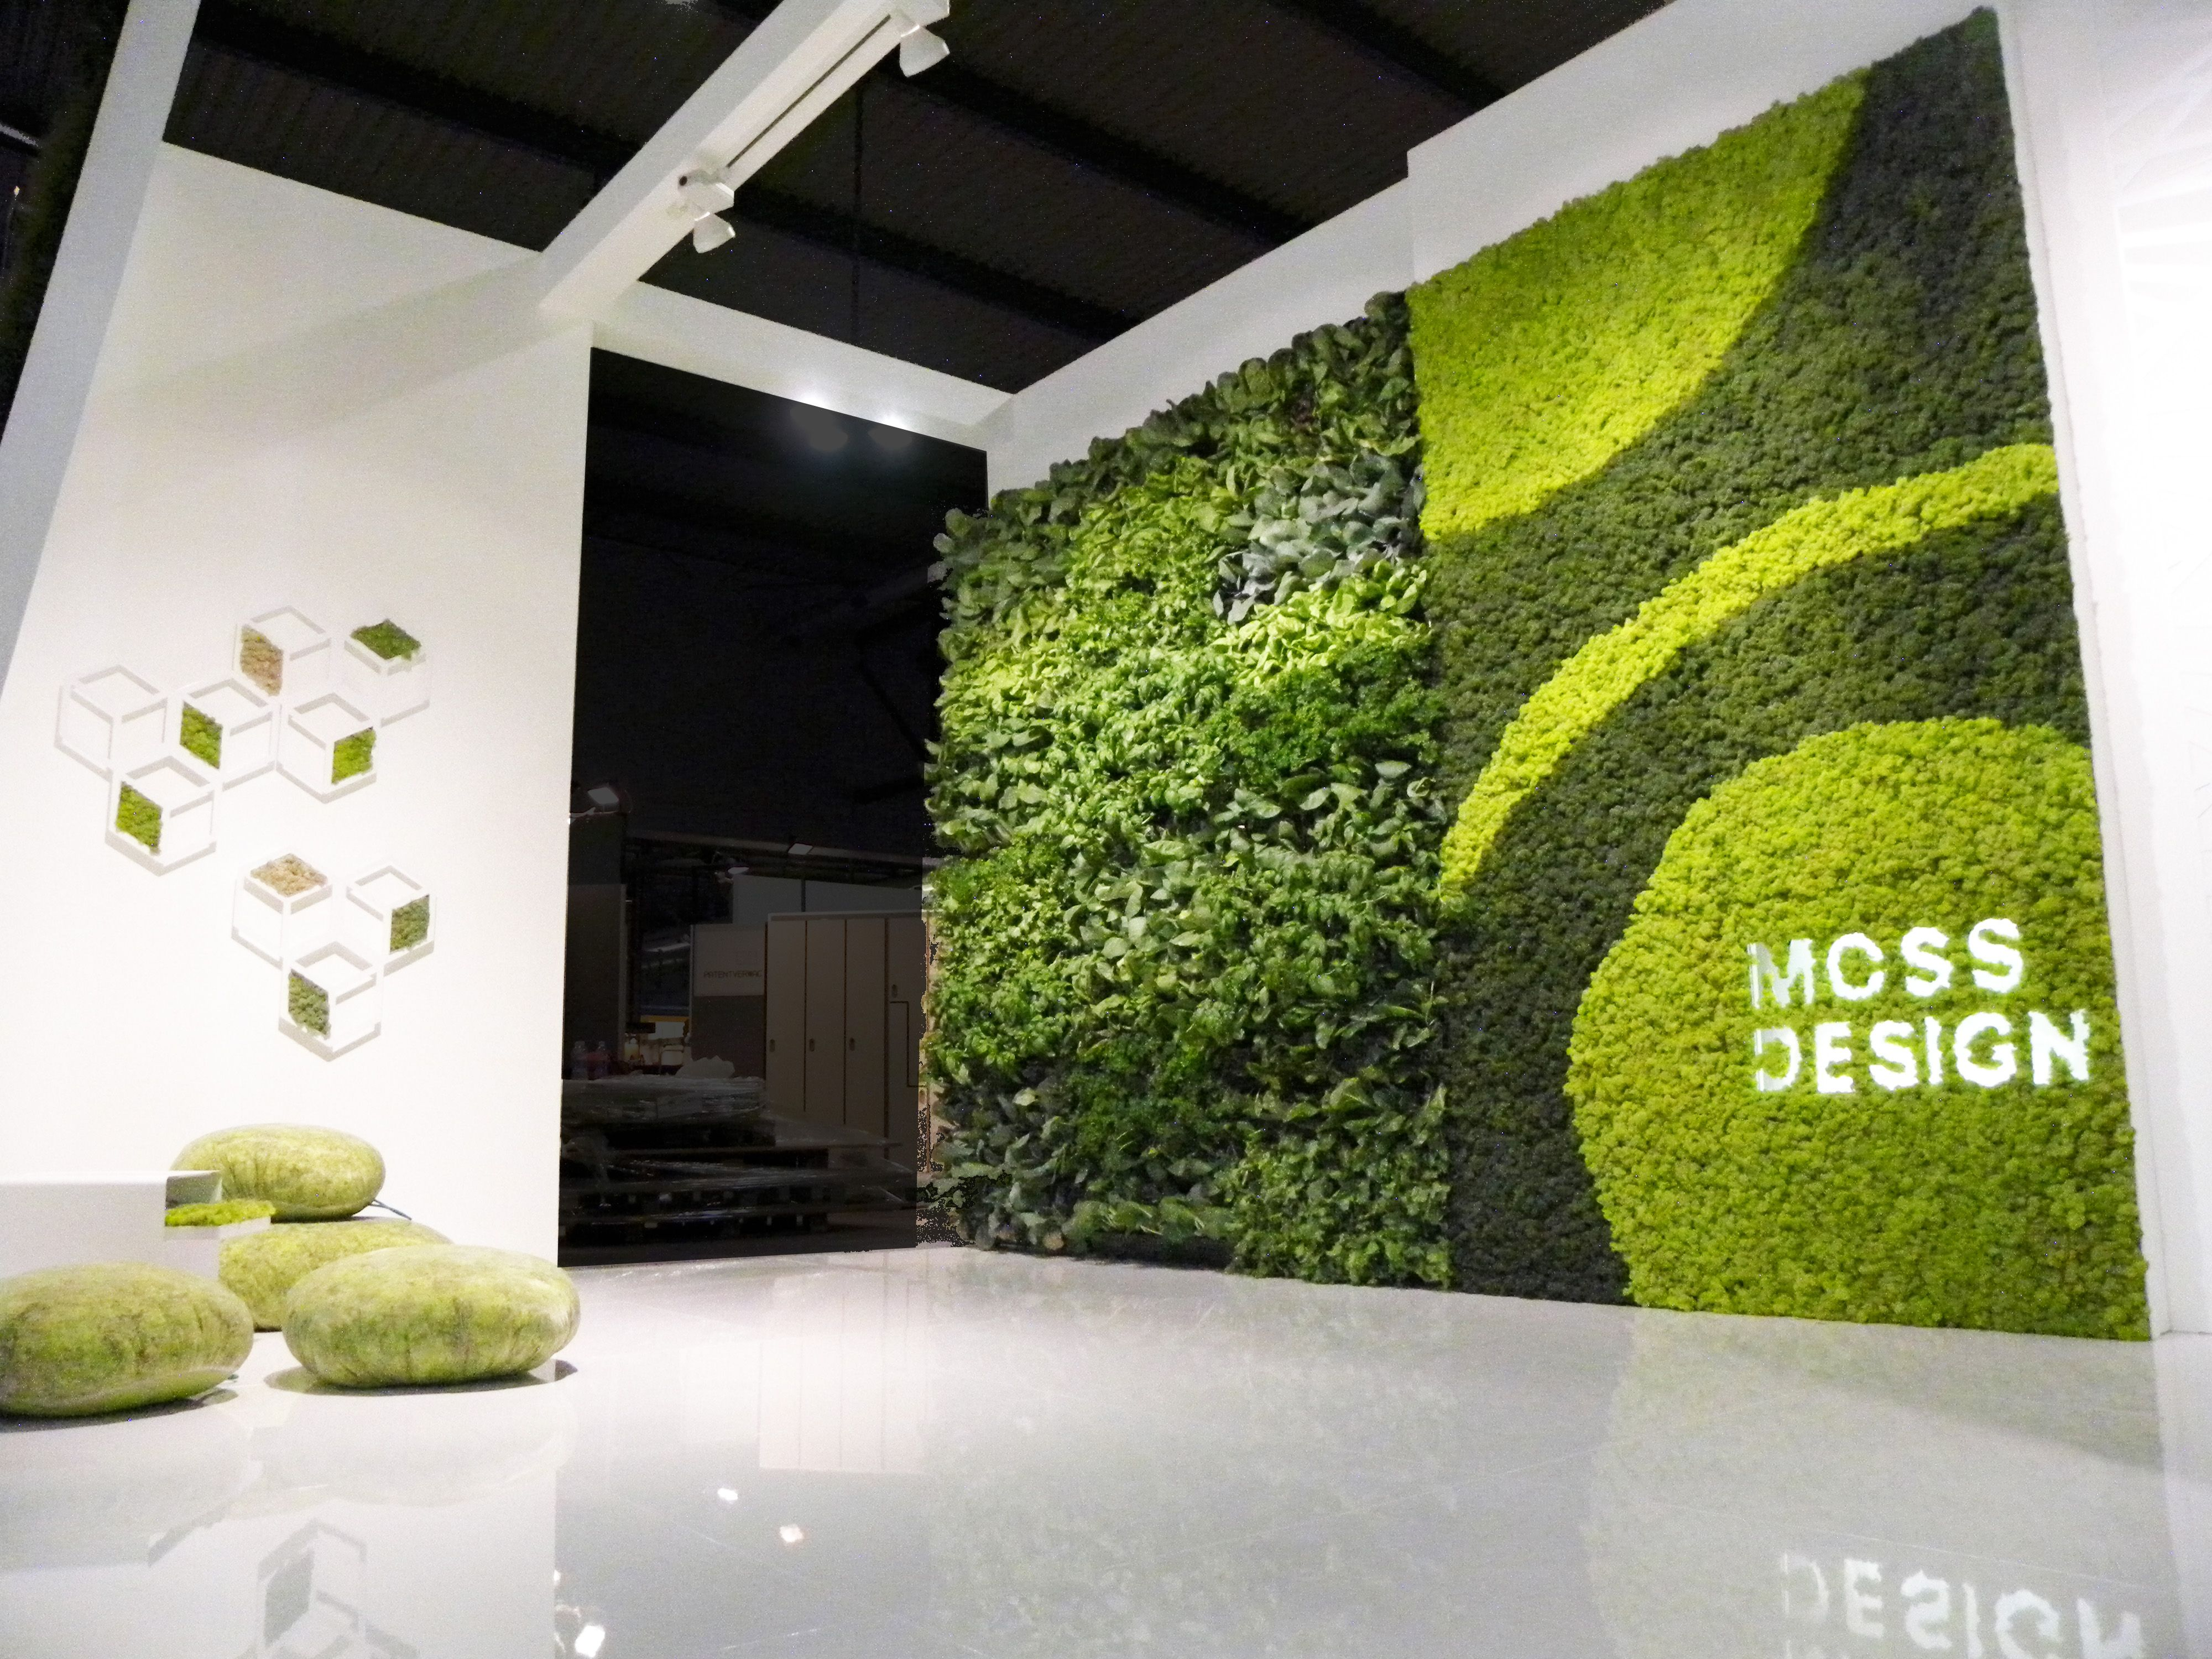 Moss wall projects made expo 2011 milano italy for Garden design milano